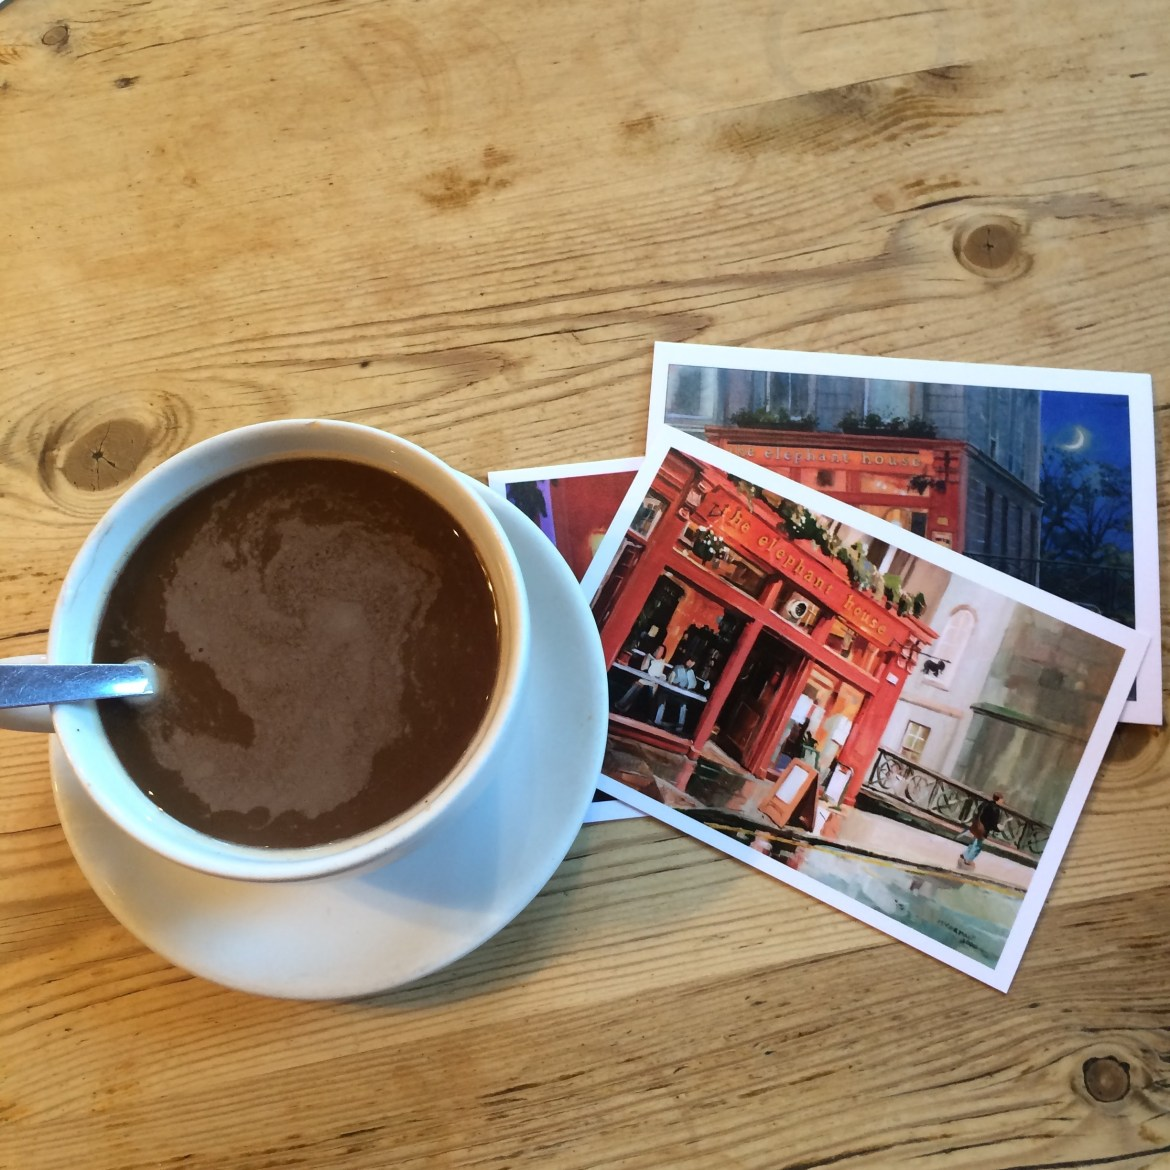 Coffee and postcard from Elephant House